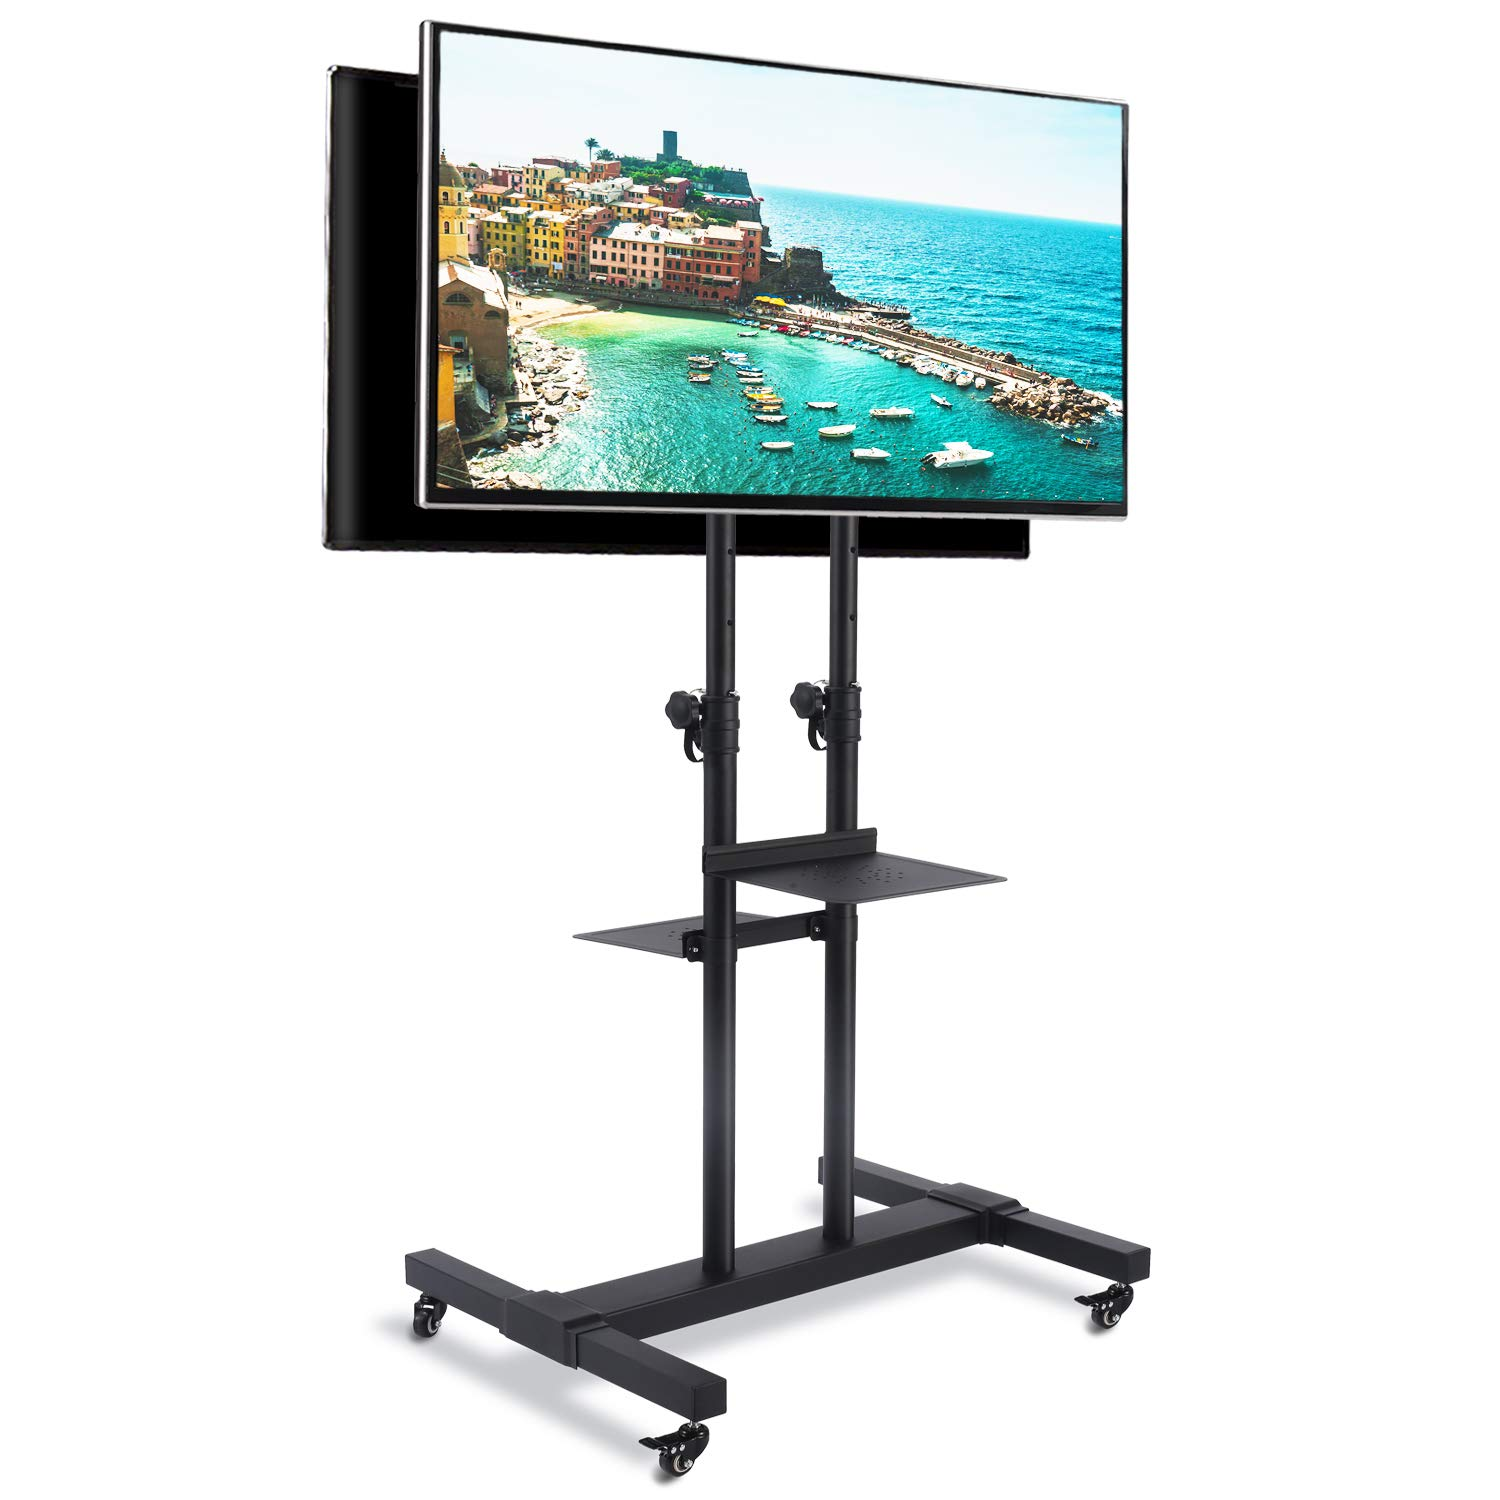 Rfiver Dual Mobile TV Stand Rolling TV Cart with Universal Mount and Wheels Fits Most 37 42 47 50 55 60 65 70 75 80 inch LCD LED OLED Plasma Flat Panel and Curved TVs,Heavy Duty Black Display TV Troll